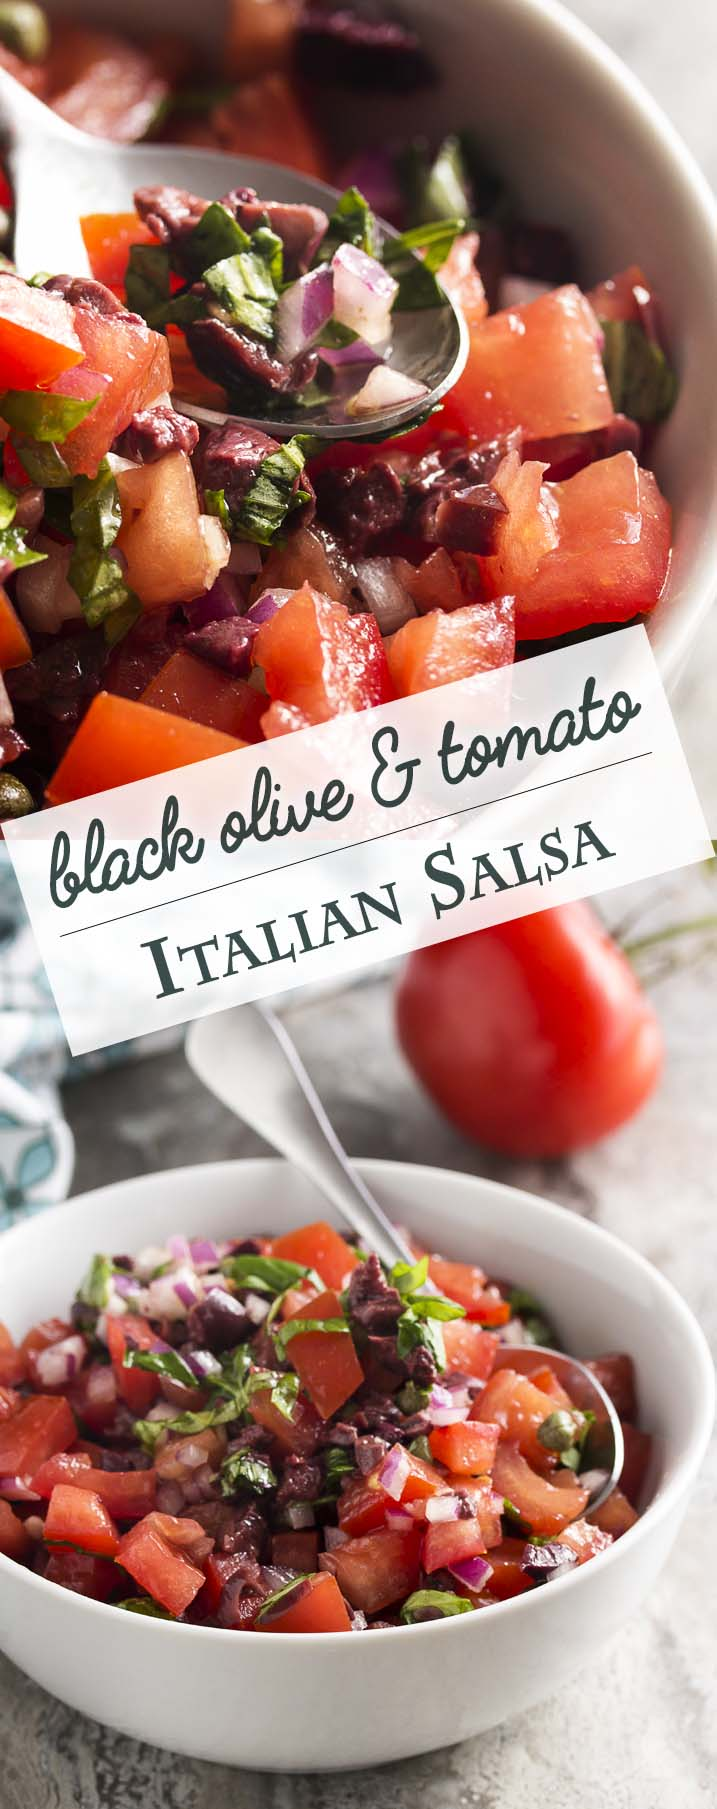 This Italian salsa is full of Italian flavors like fresh tomatoes, capers, black olives, and basil! It's great on grilled meats, bruschetta, or as a dip with chips. | justalittlebitofbacon.com